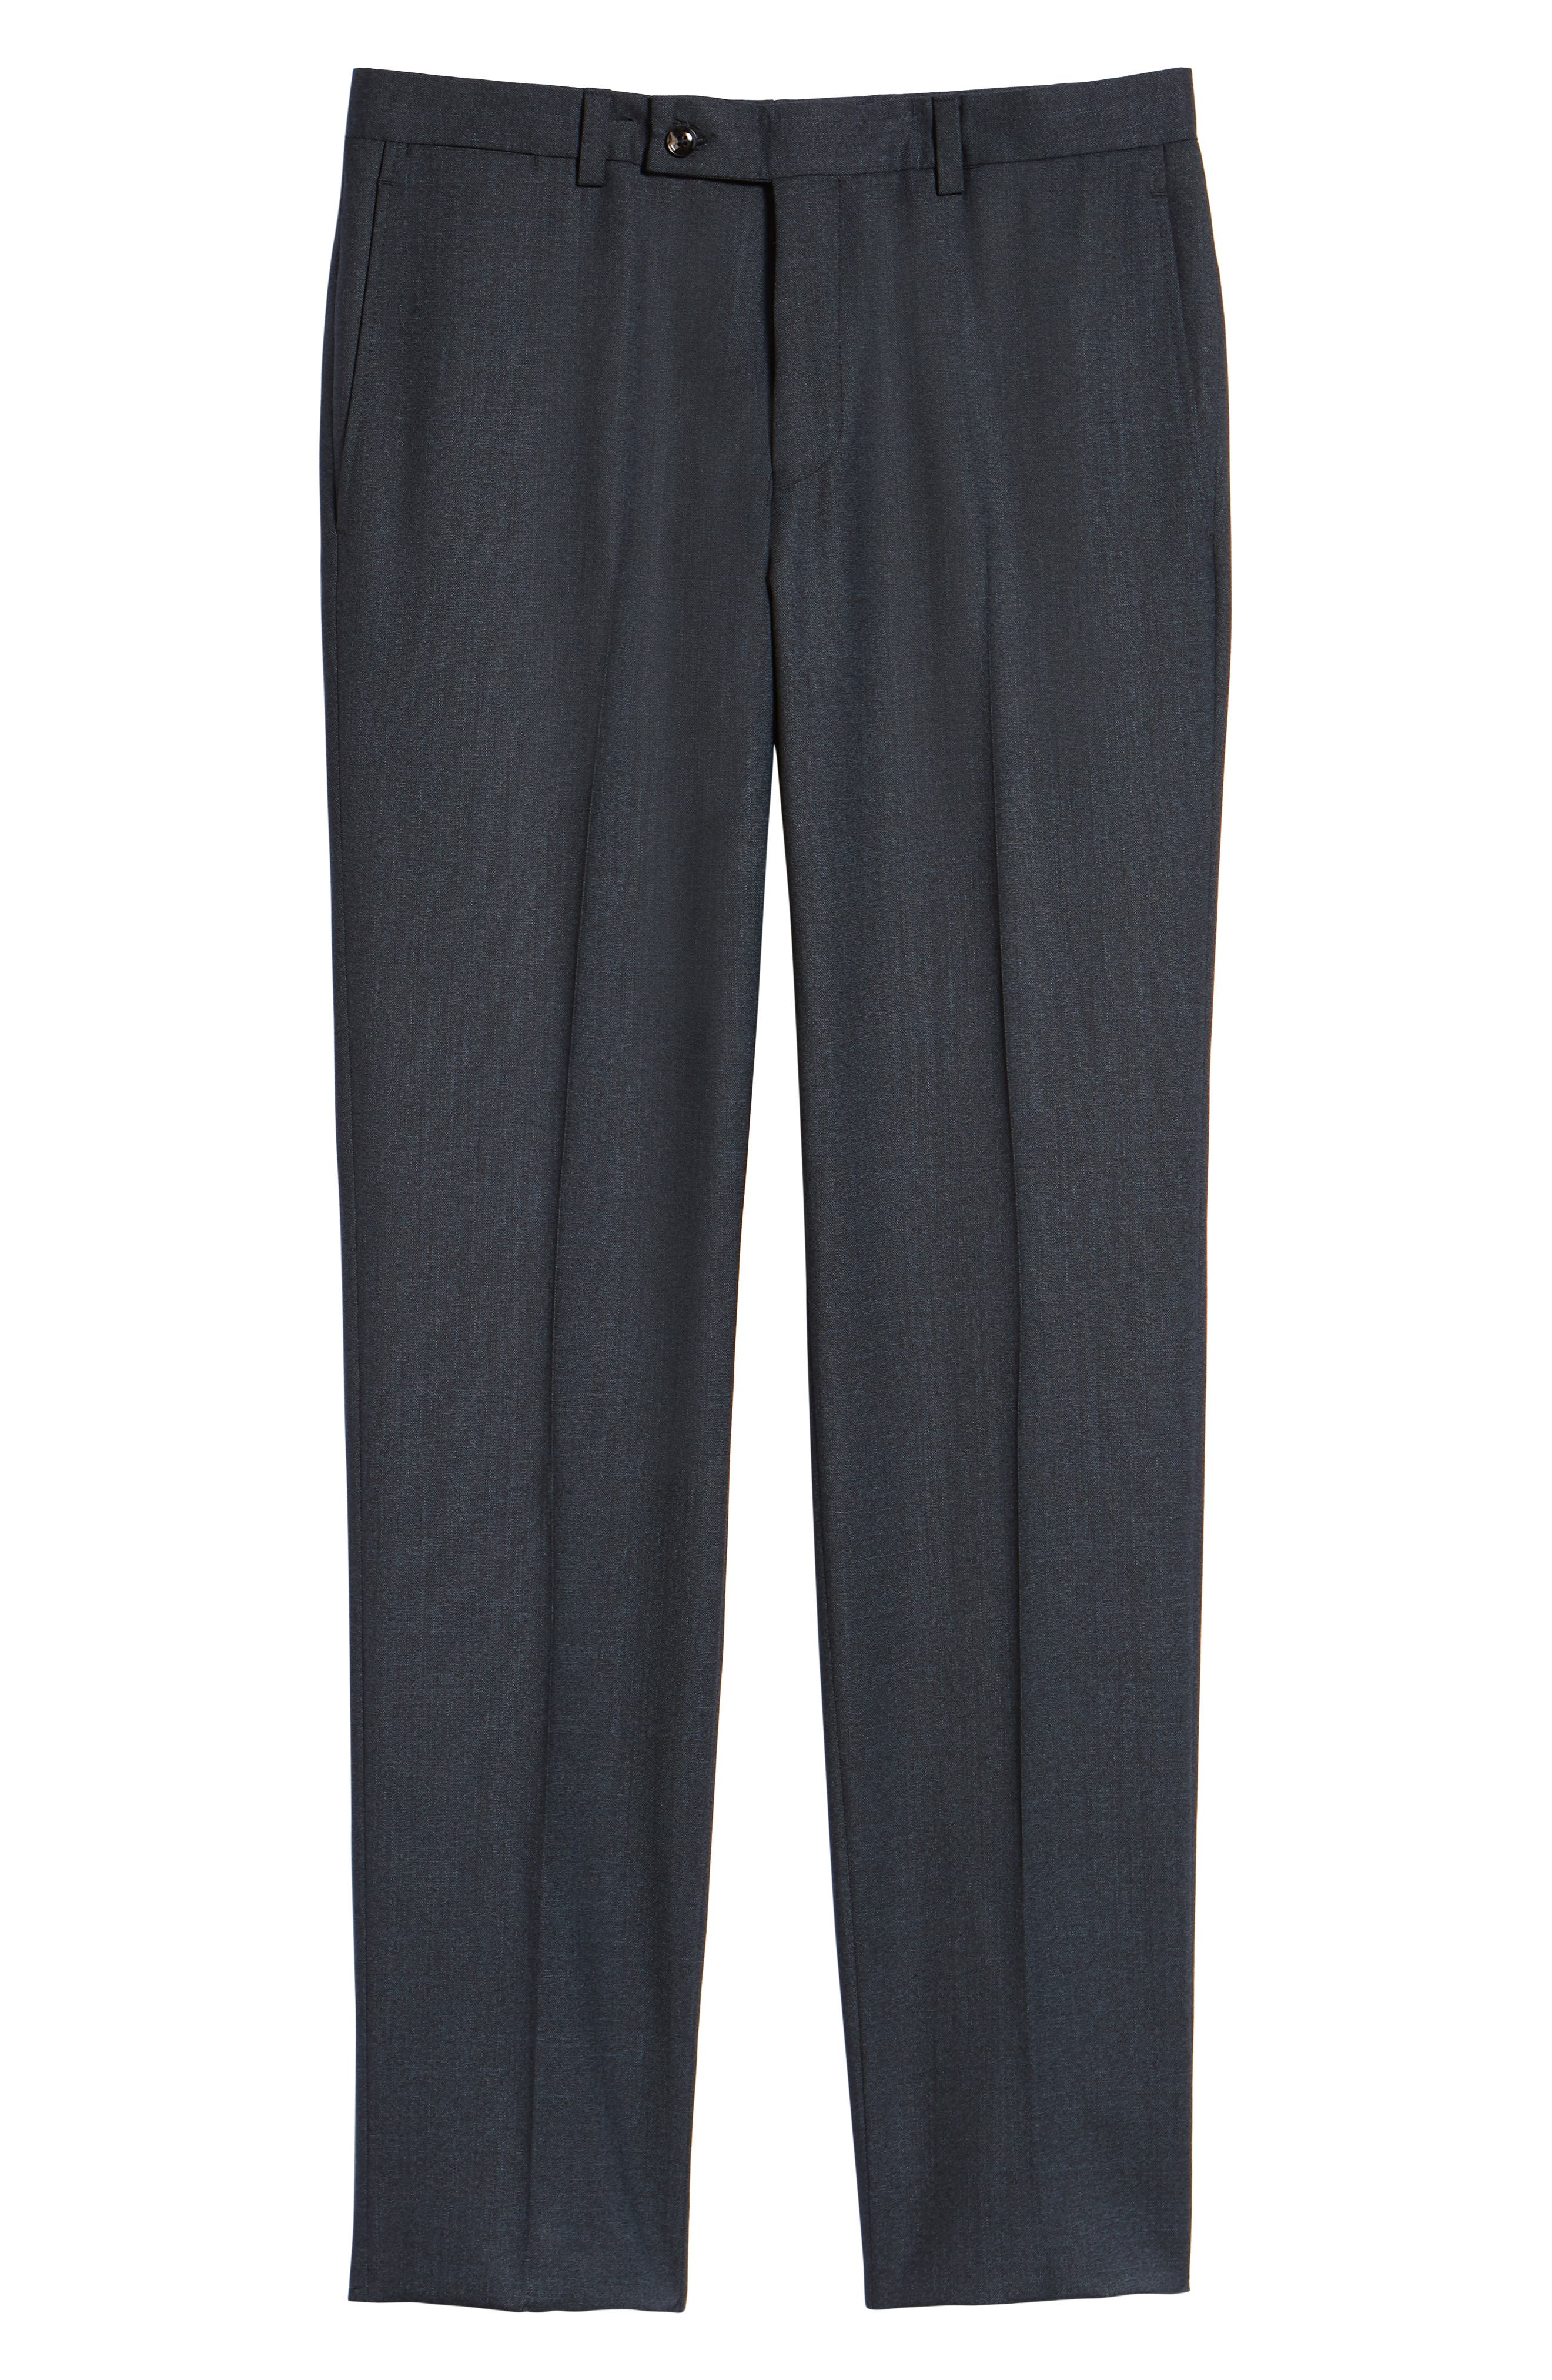 Jefferson Flat Front Solid Wool Trousers,                             Alternate thumbnail 6, color,                             BLUE